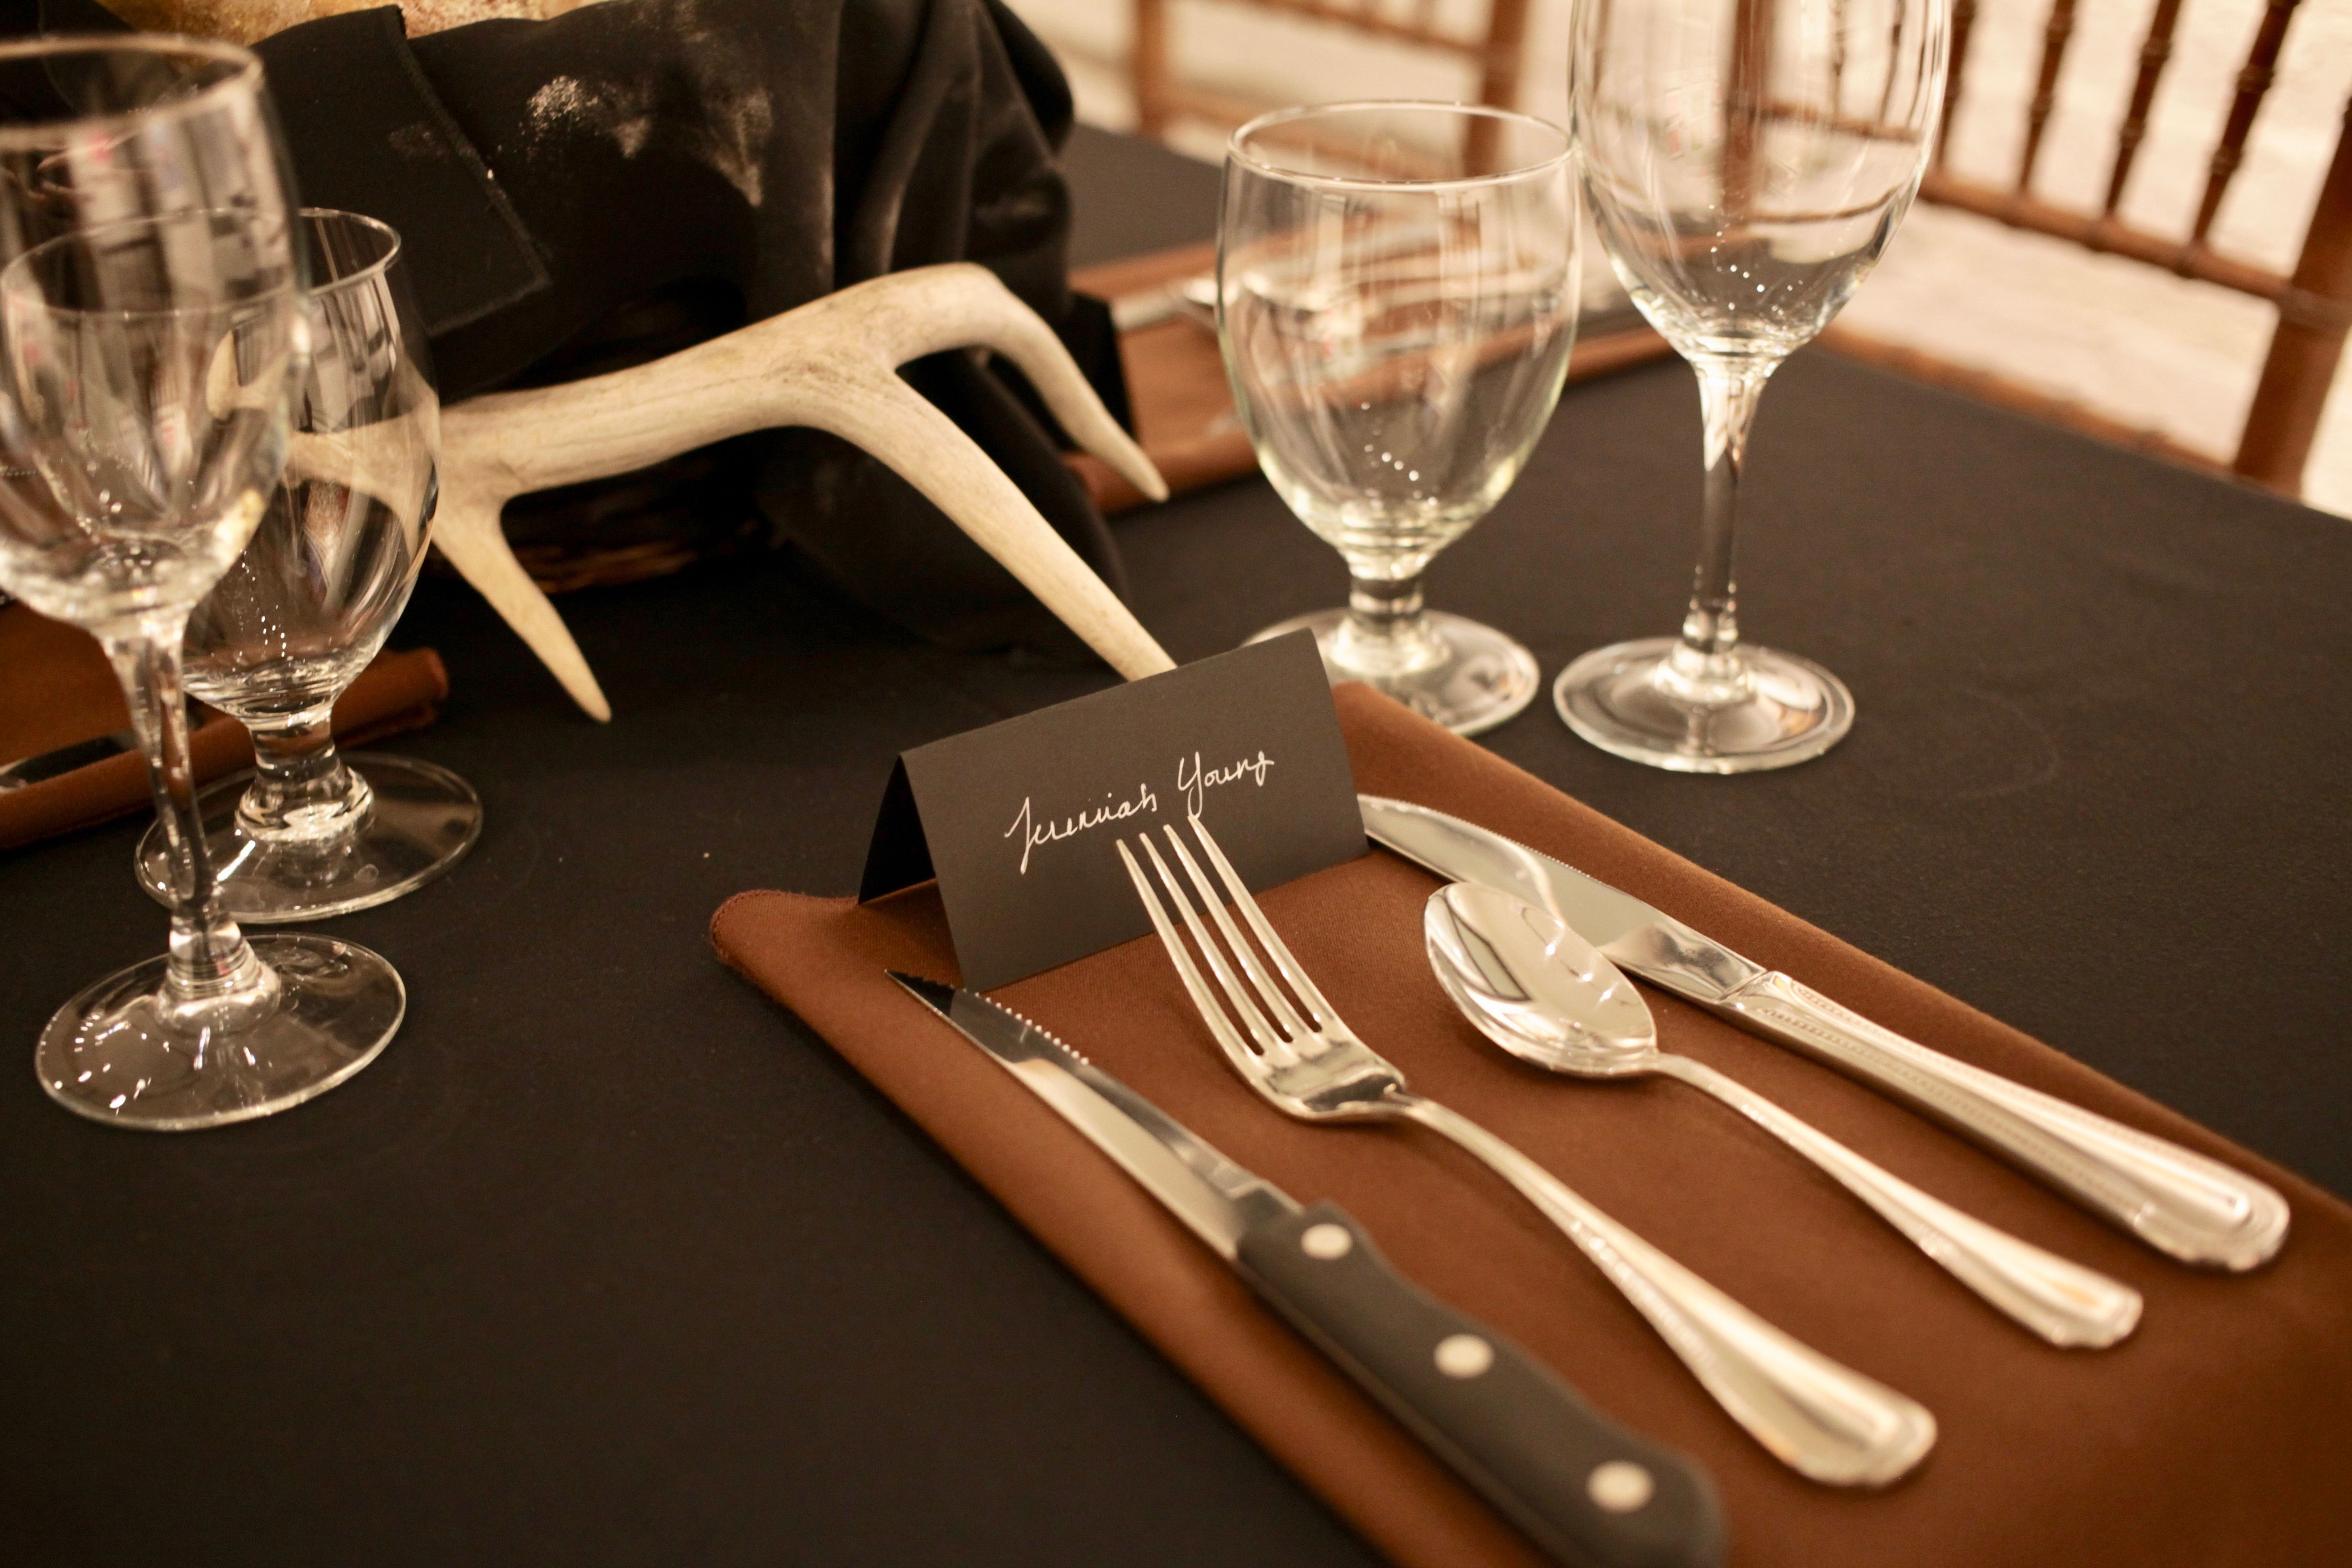 Rustic and refined table setting.